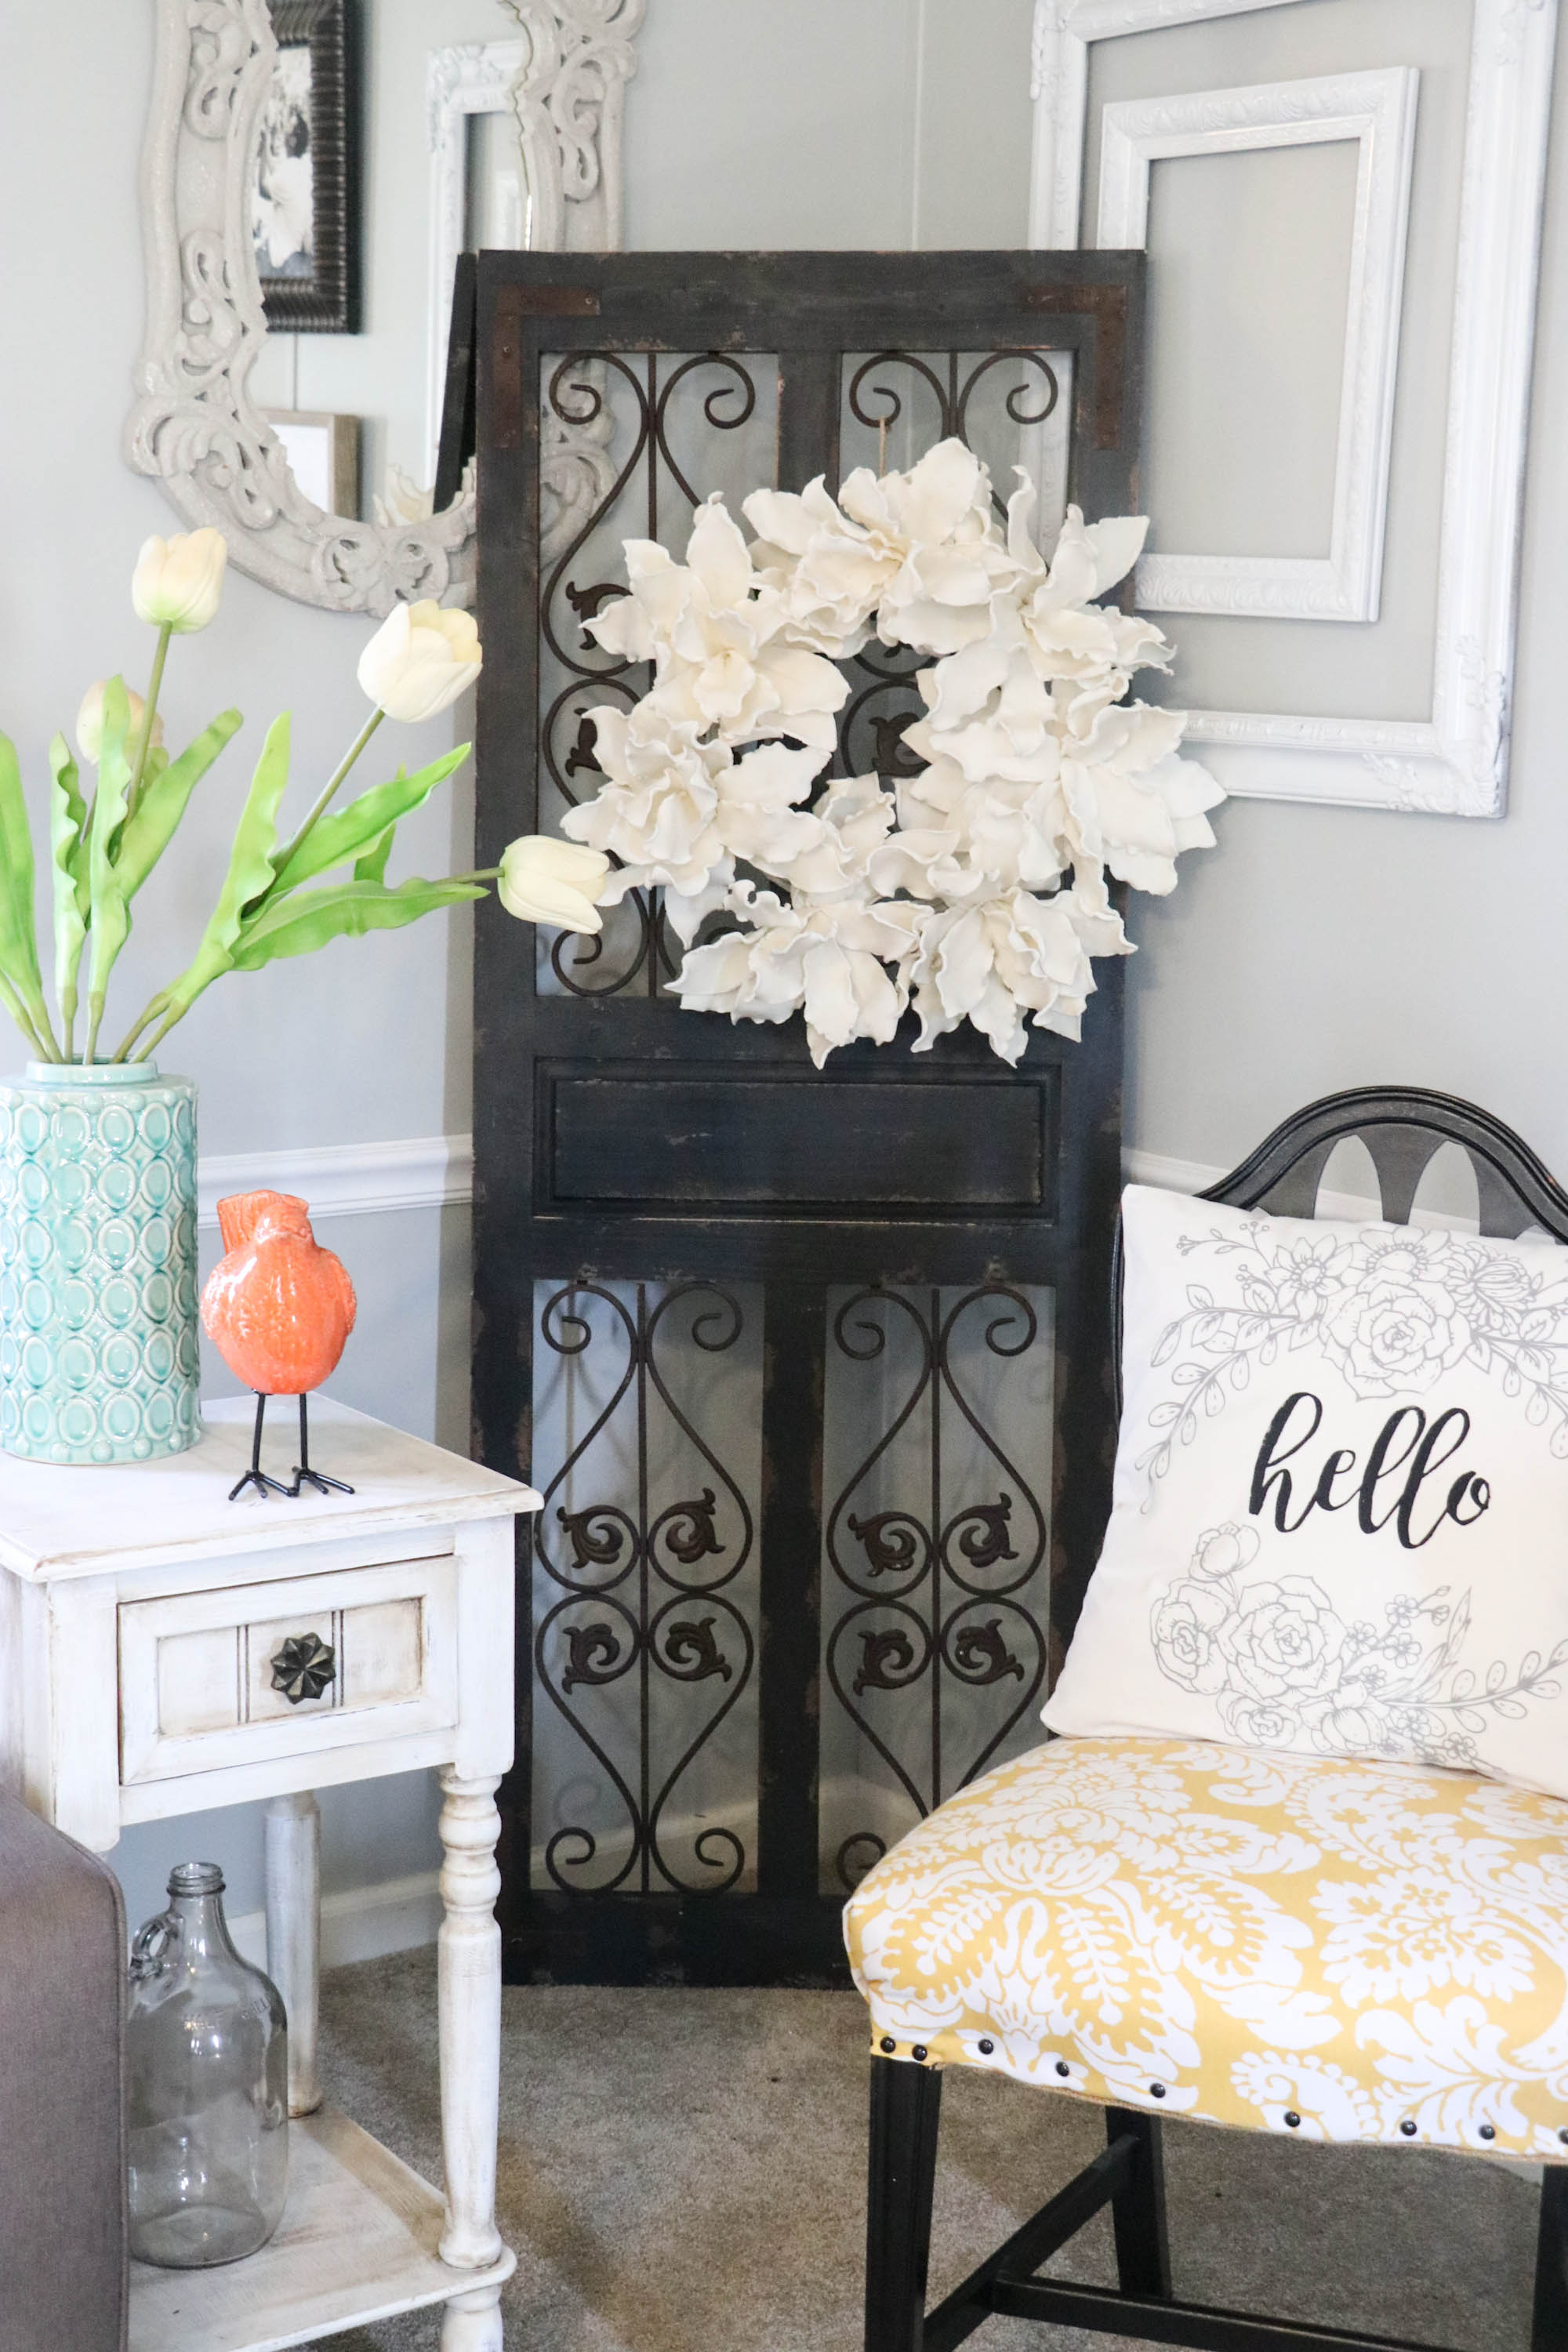 Spring decorating doesn't have to be over the top. Just adding a few colorful touches can change your entire look, on a dime!